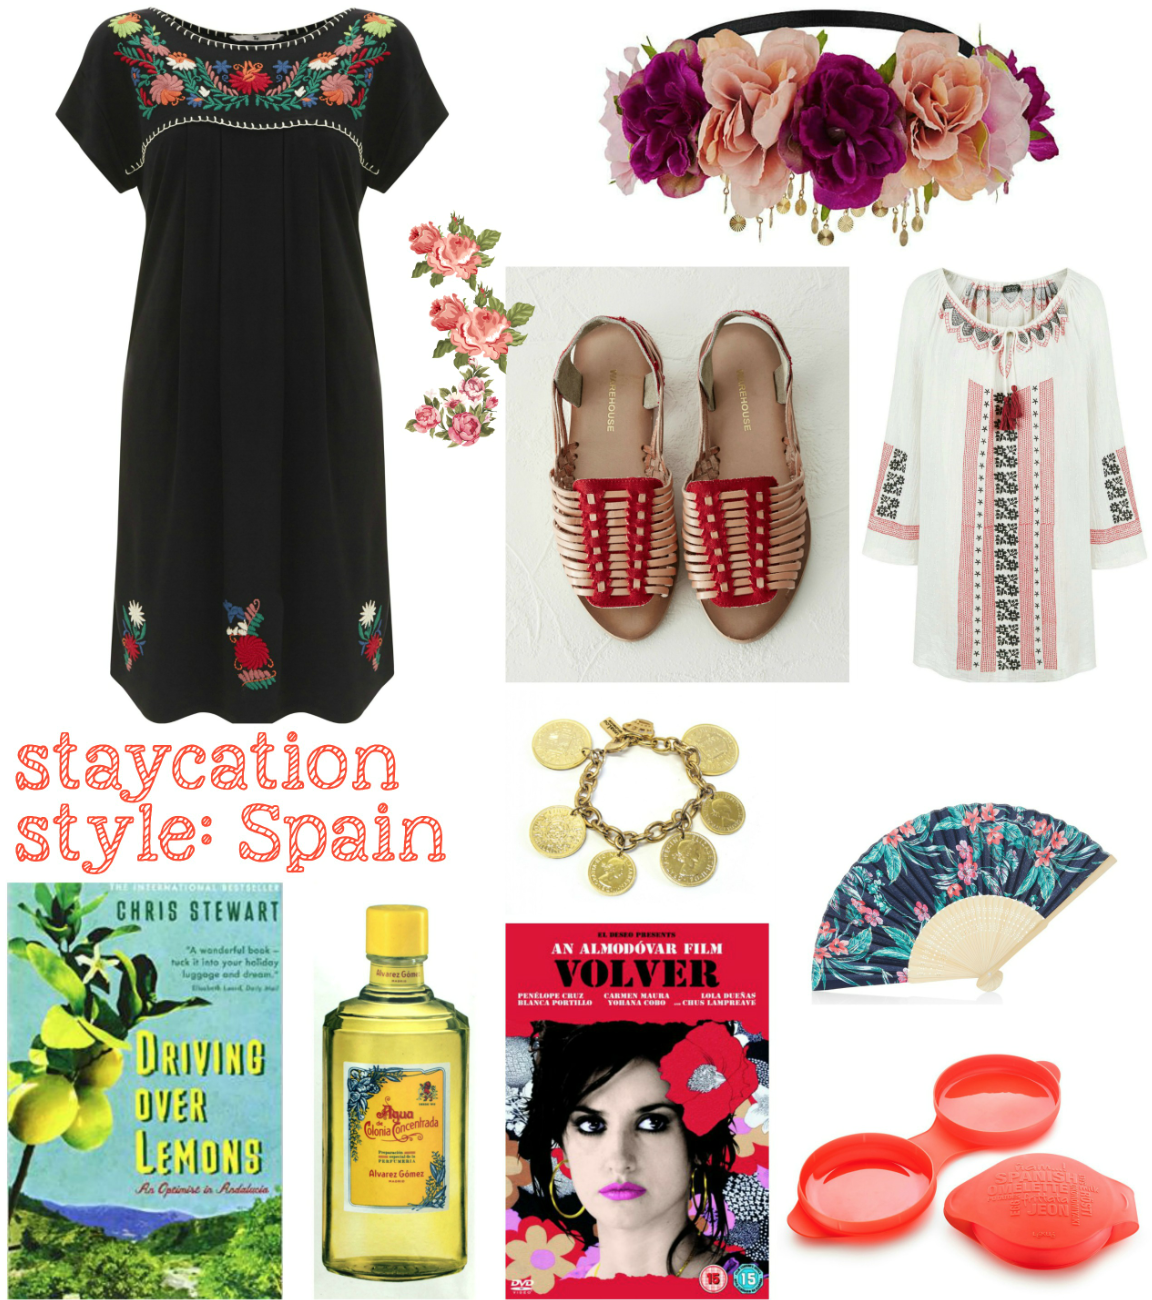 mamasVIB | V. I. BABYMAMAS: How to take a stylish holiday …at HOME! Part 1 | spanish holiday | holiday | stay cation | holiday style | vacation | trip | spain | spanish fashion | omelette maker | spanish fan | ann lou of london | coin bracelet | lemons | embroidery | smock drew | topshop | kaftan | leather sandals | warehouse spanish style | holiday in spain | holiday looks | style | mamasVIb | andalucia boo | cologne | mamasVIb | stylist | blog